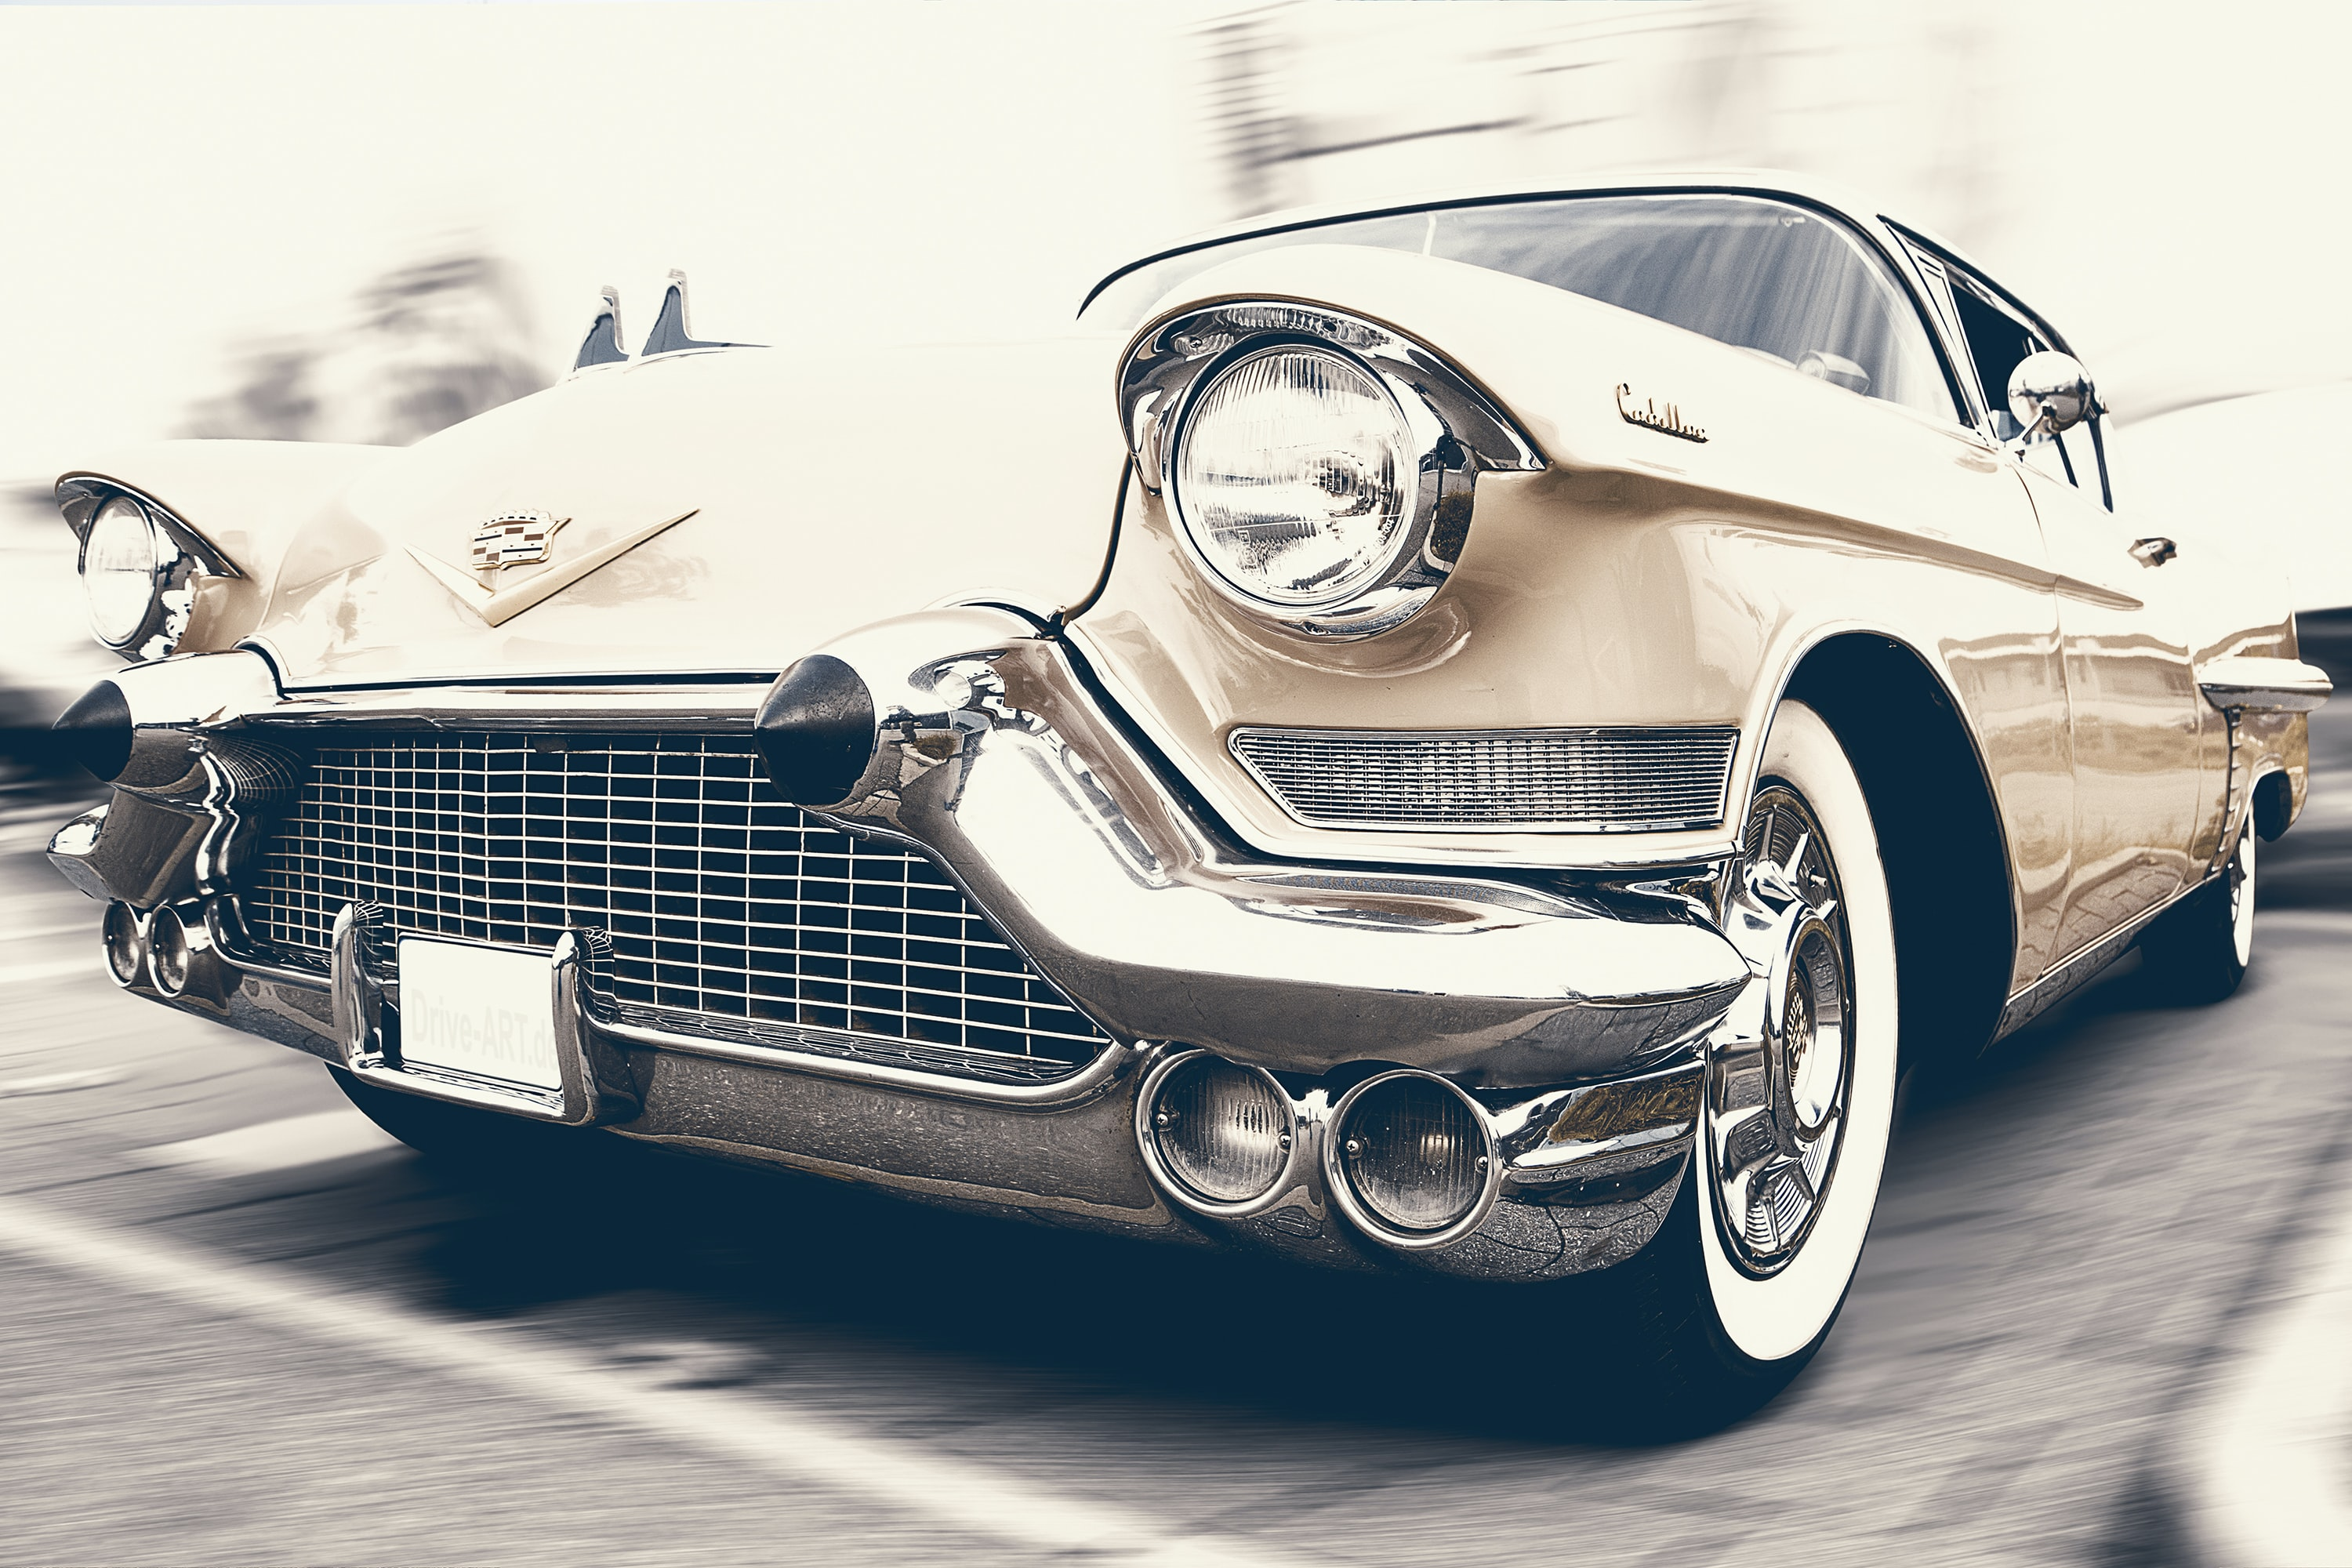 Close up shot of vintage beige Cadillac with chrome grille parked on pavement